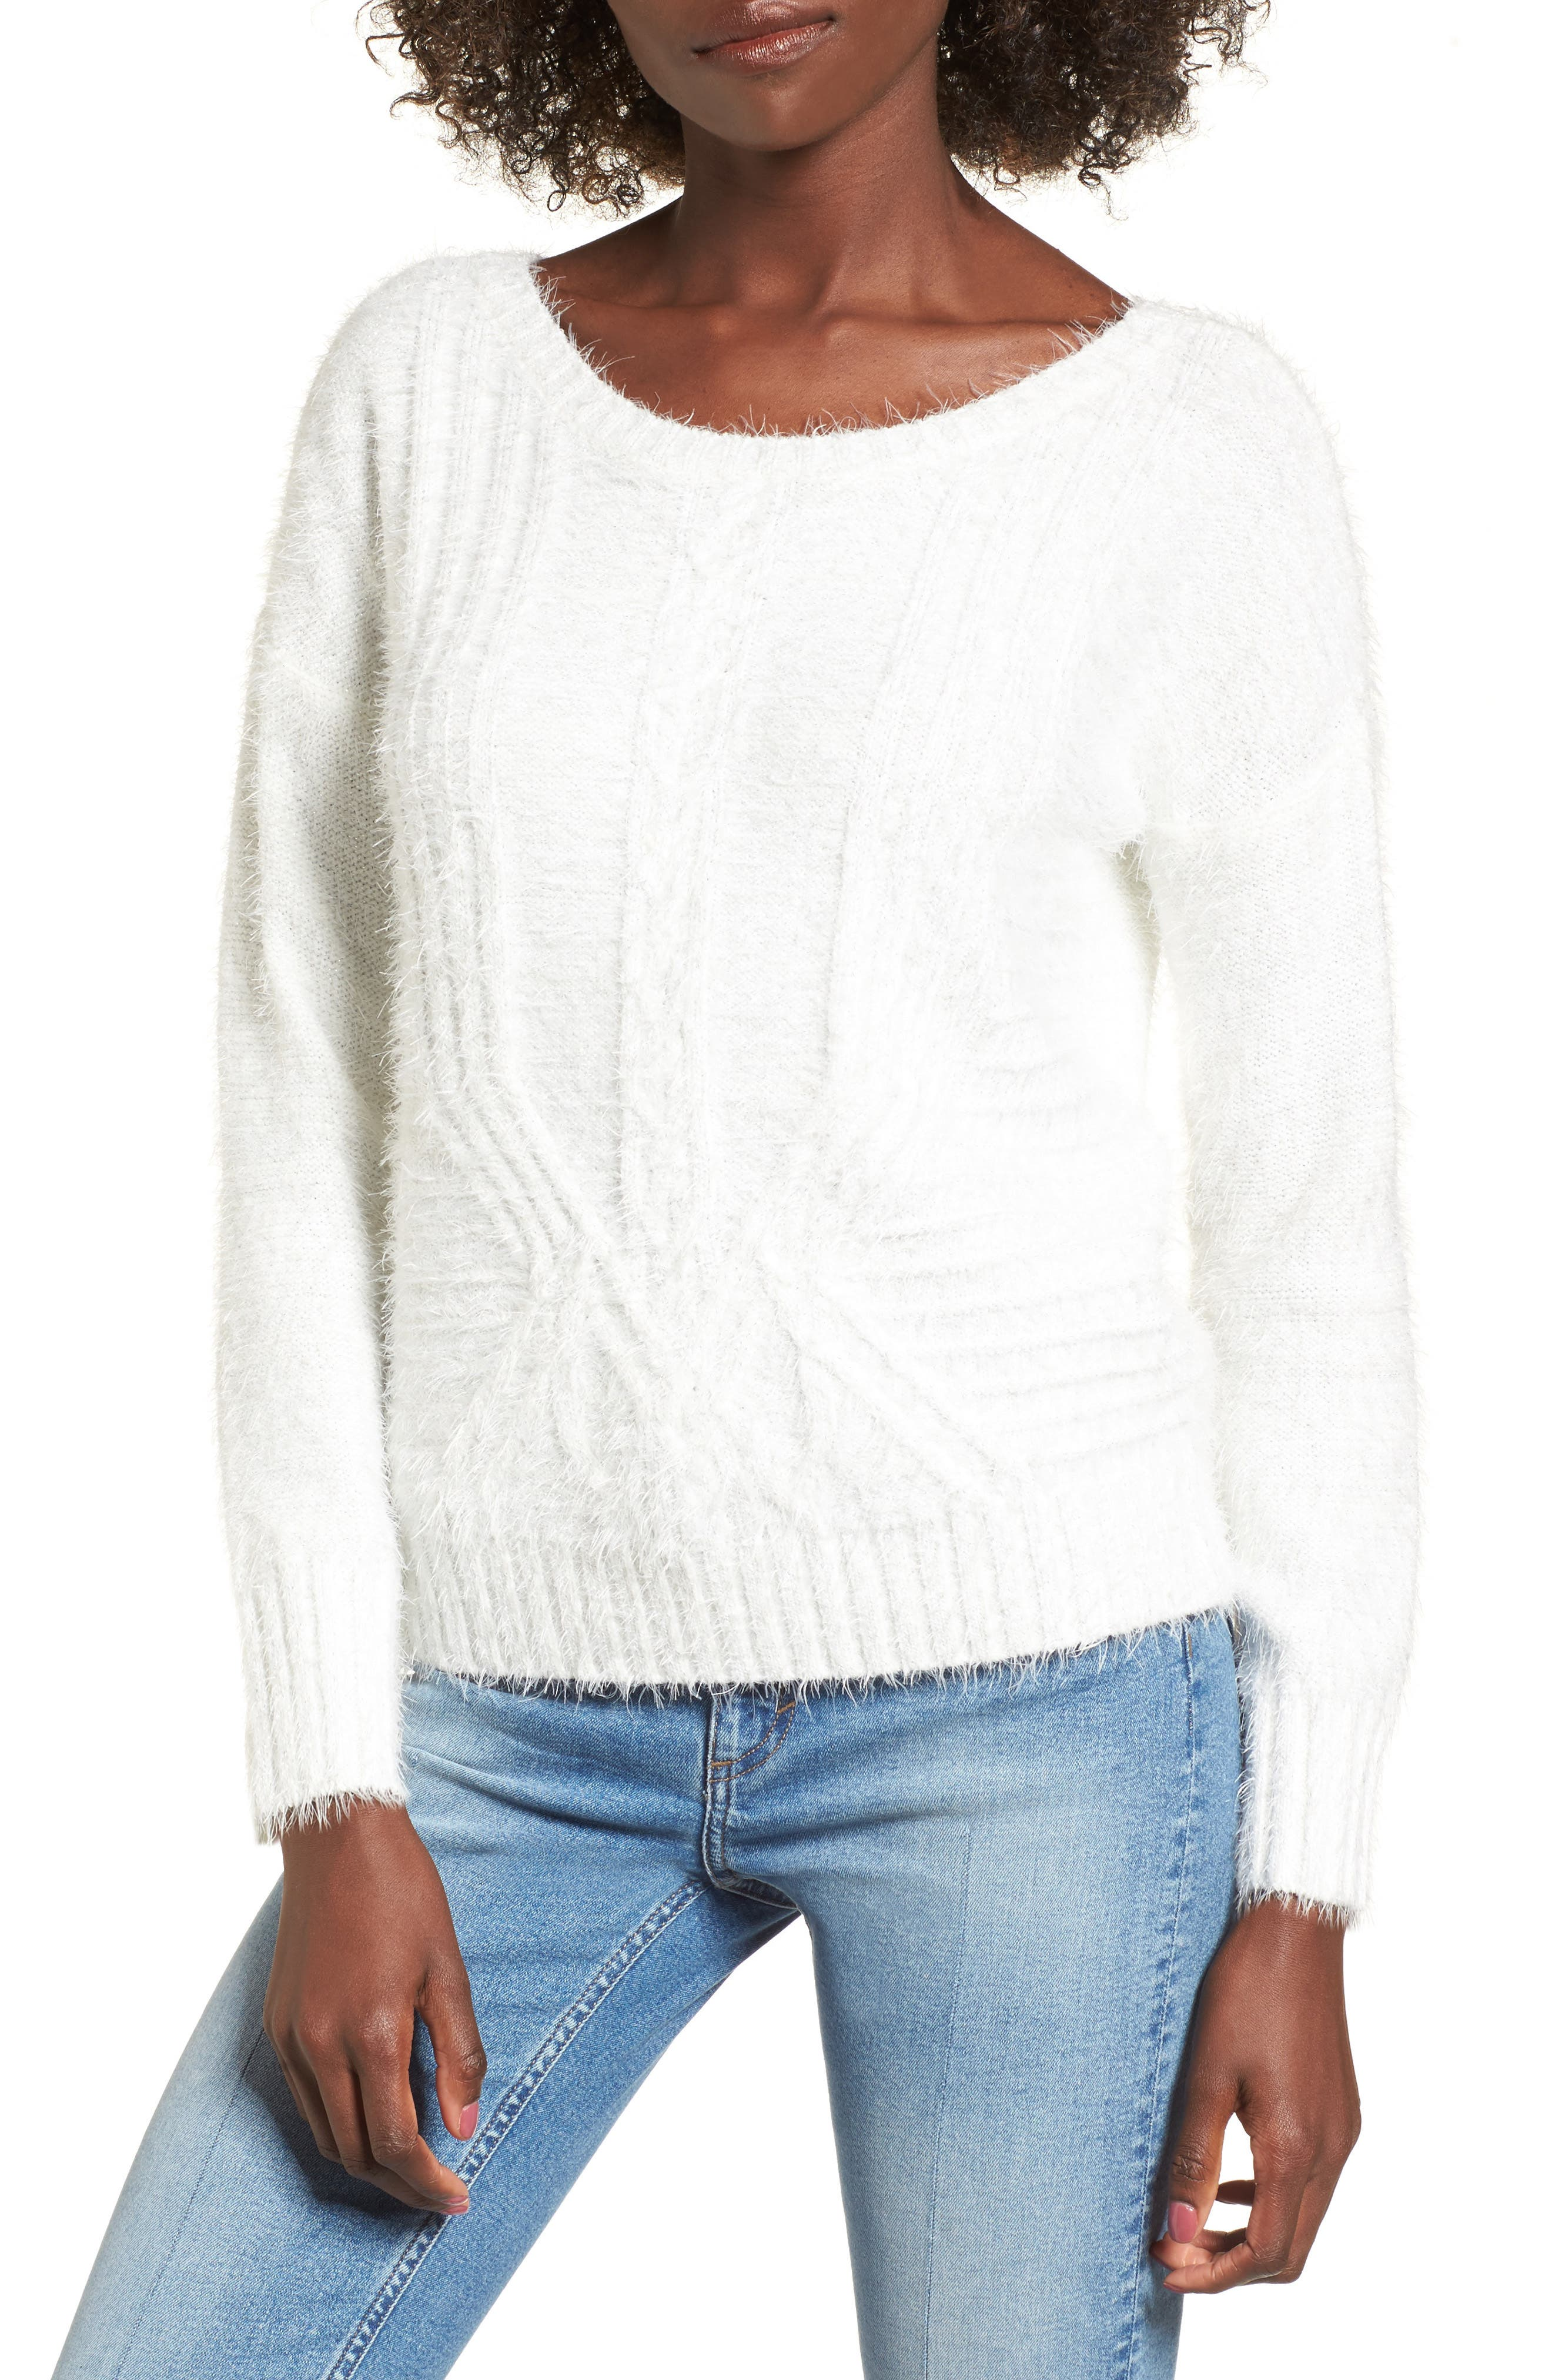 Raga Emily Eyelash Knit Sweater